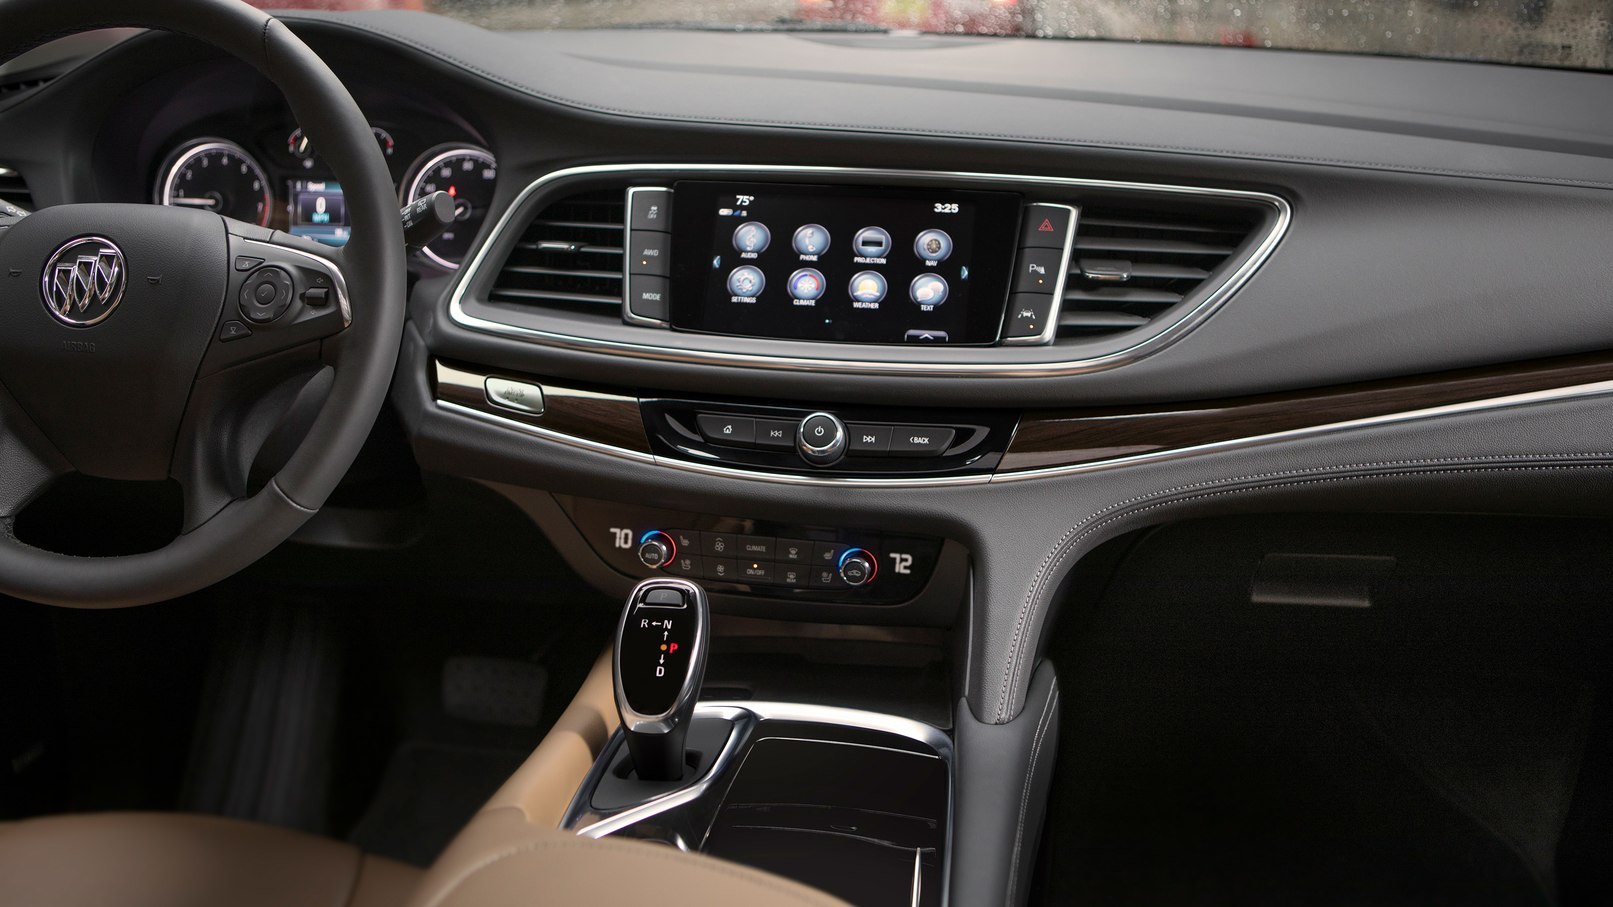 Interior of the 2019 Enclave